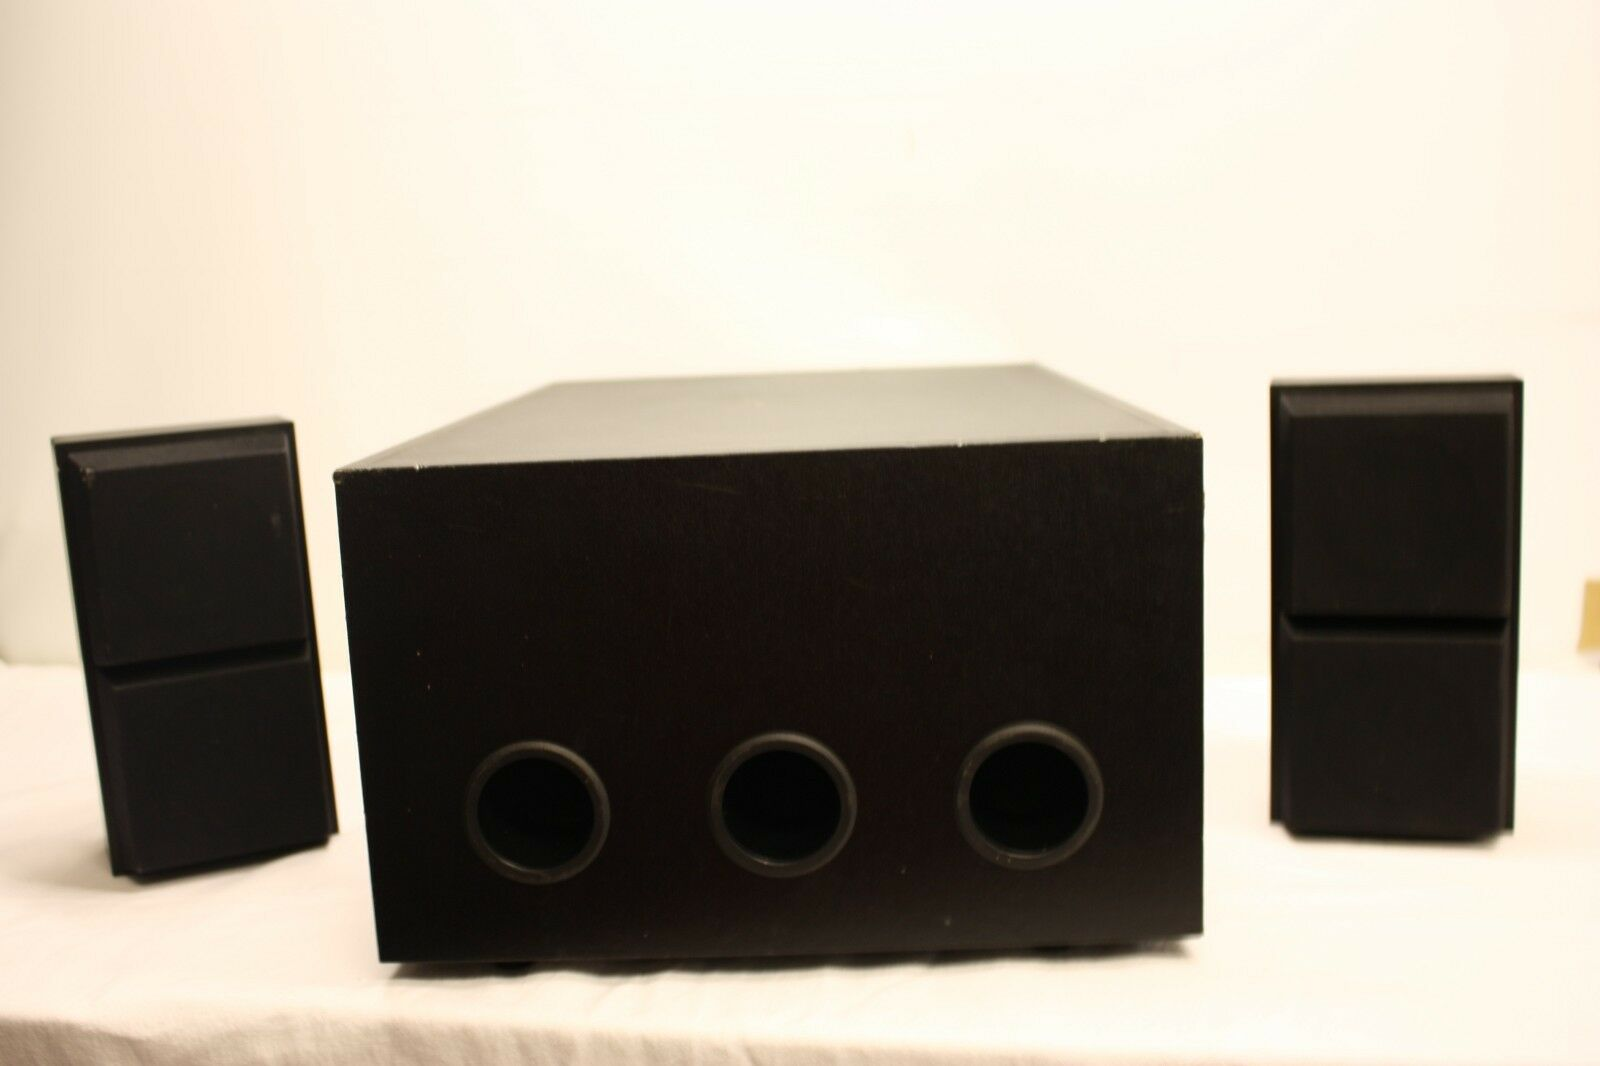 STUDIO POWER SUB 2000 SUBWOOFER STUDIO POWER WITH 2 SPEAKERS ITEM CODE P22